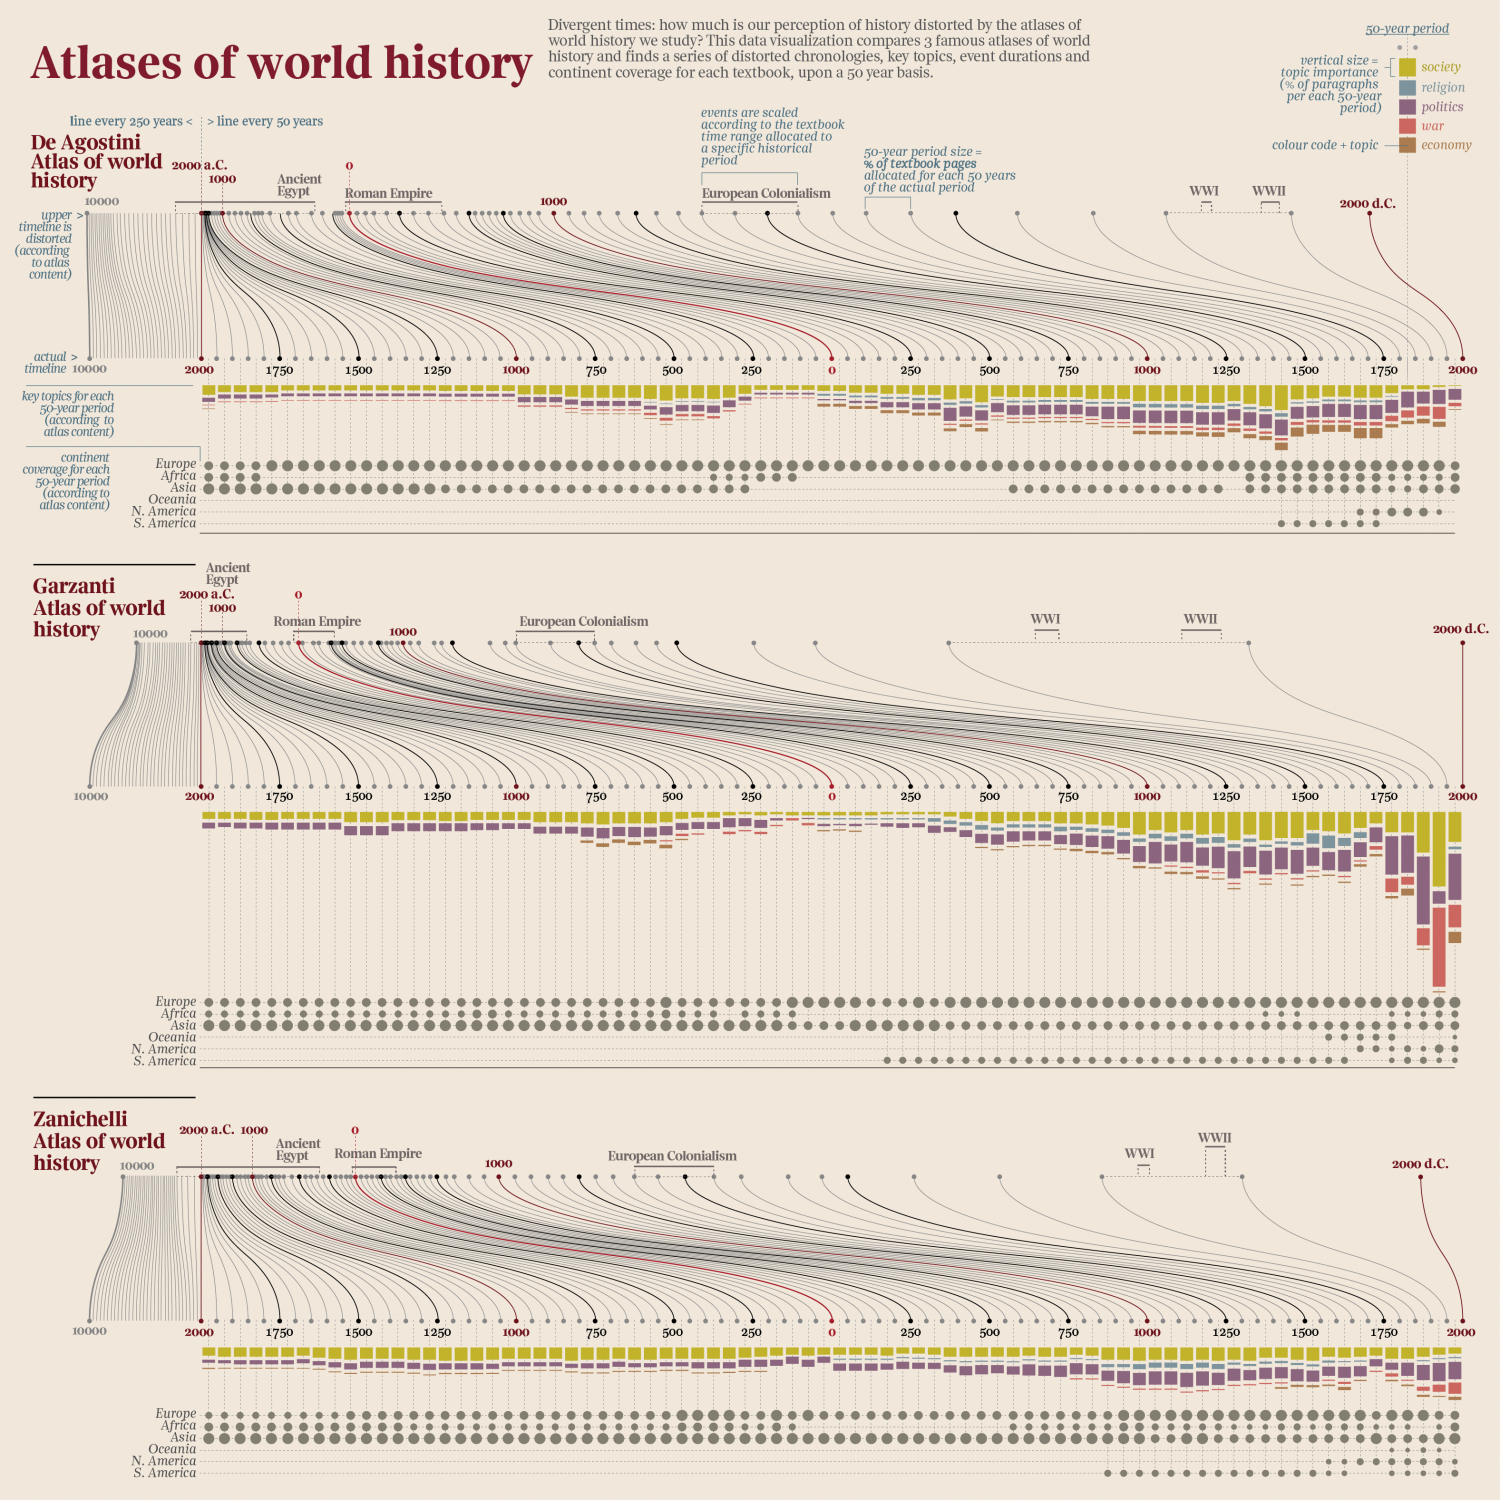 Atlases of world history (English) Infographic